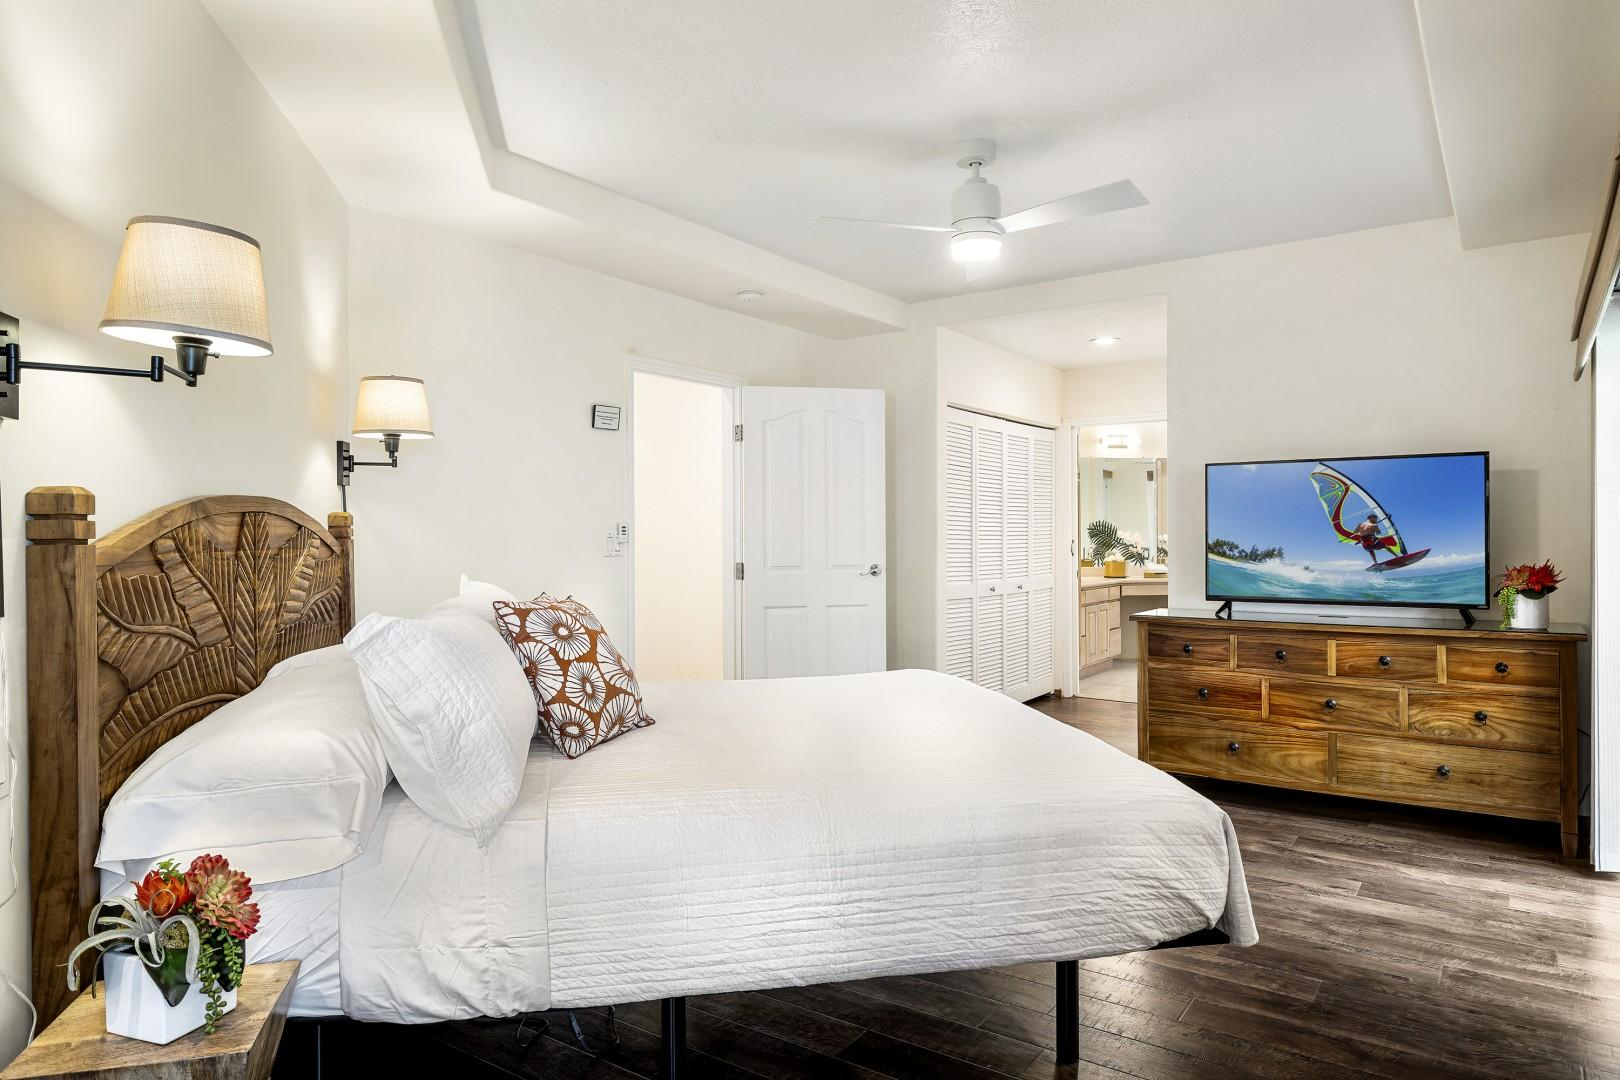 Spacious Master offers a resort style living with adjustable bed frame